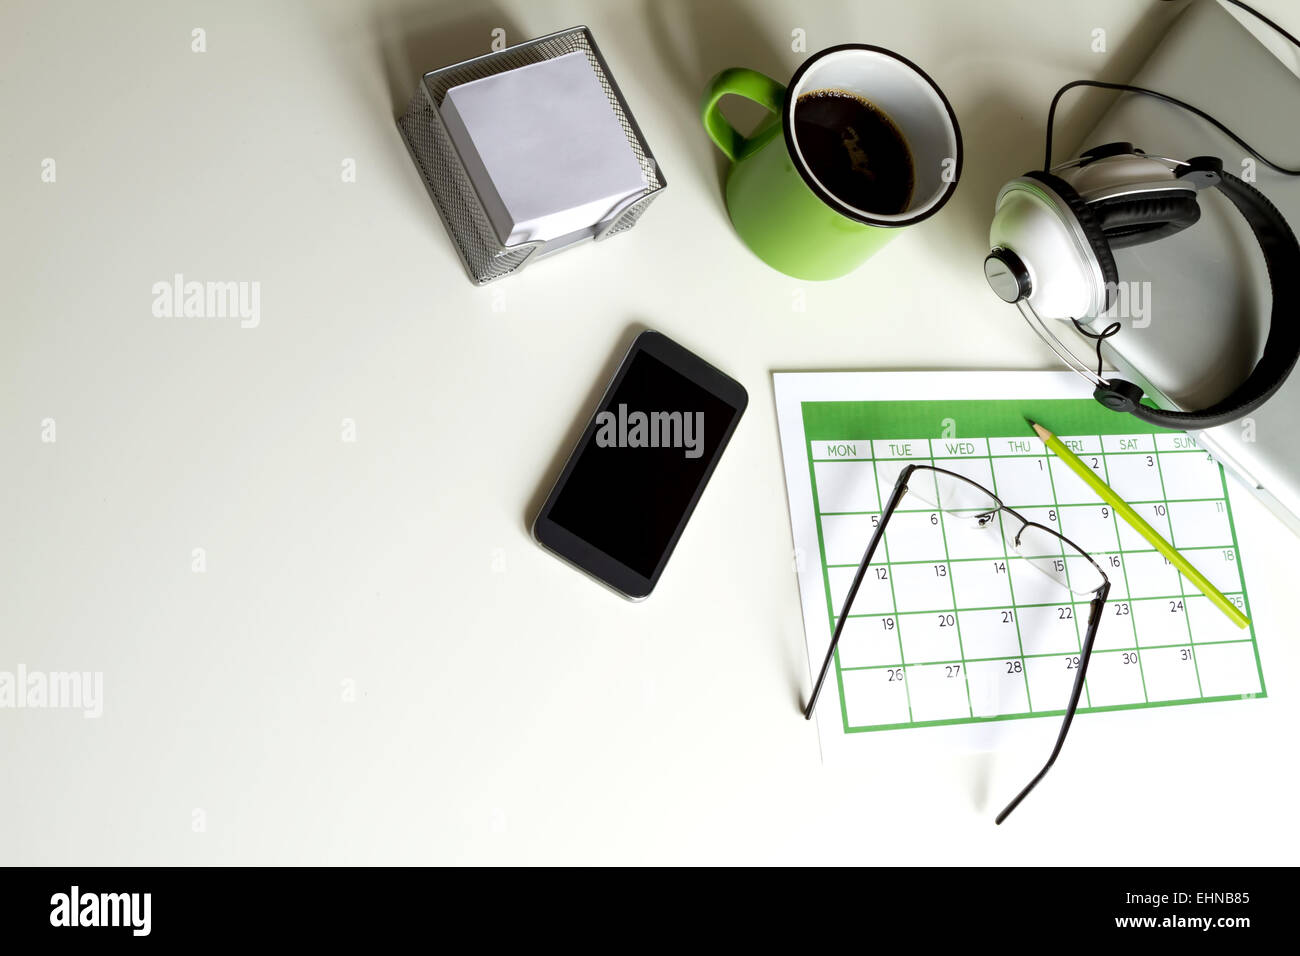 Organizing business and personal tasks and meetings - Stock Image